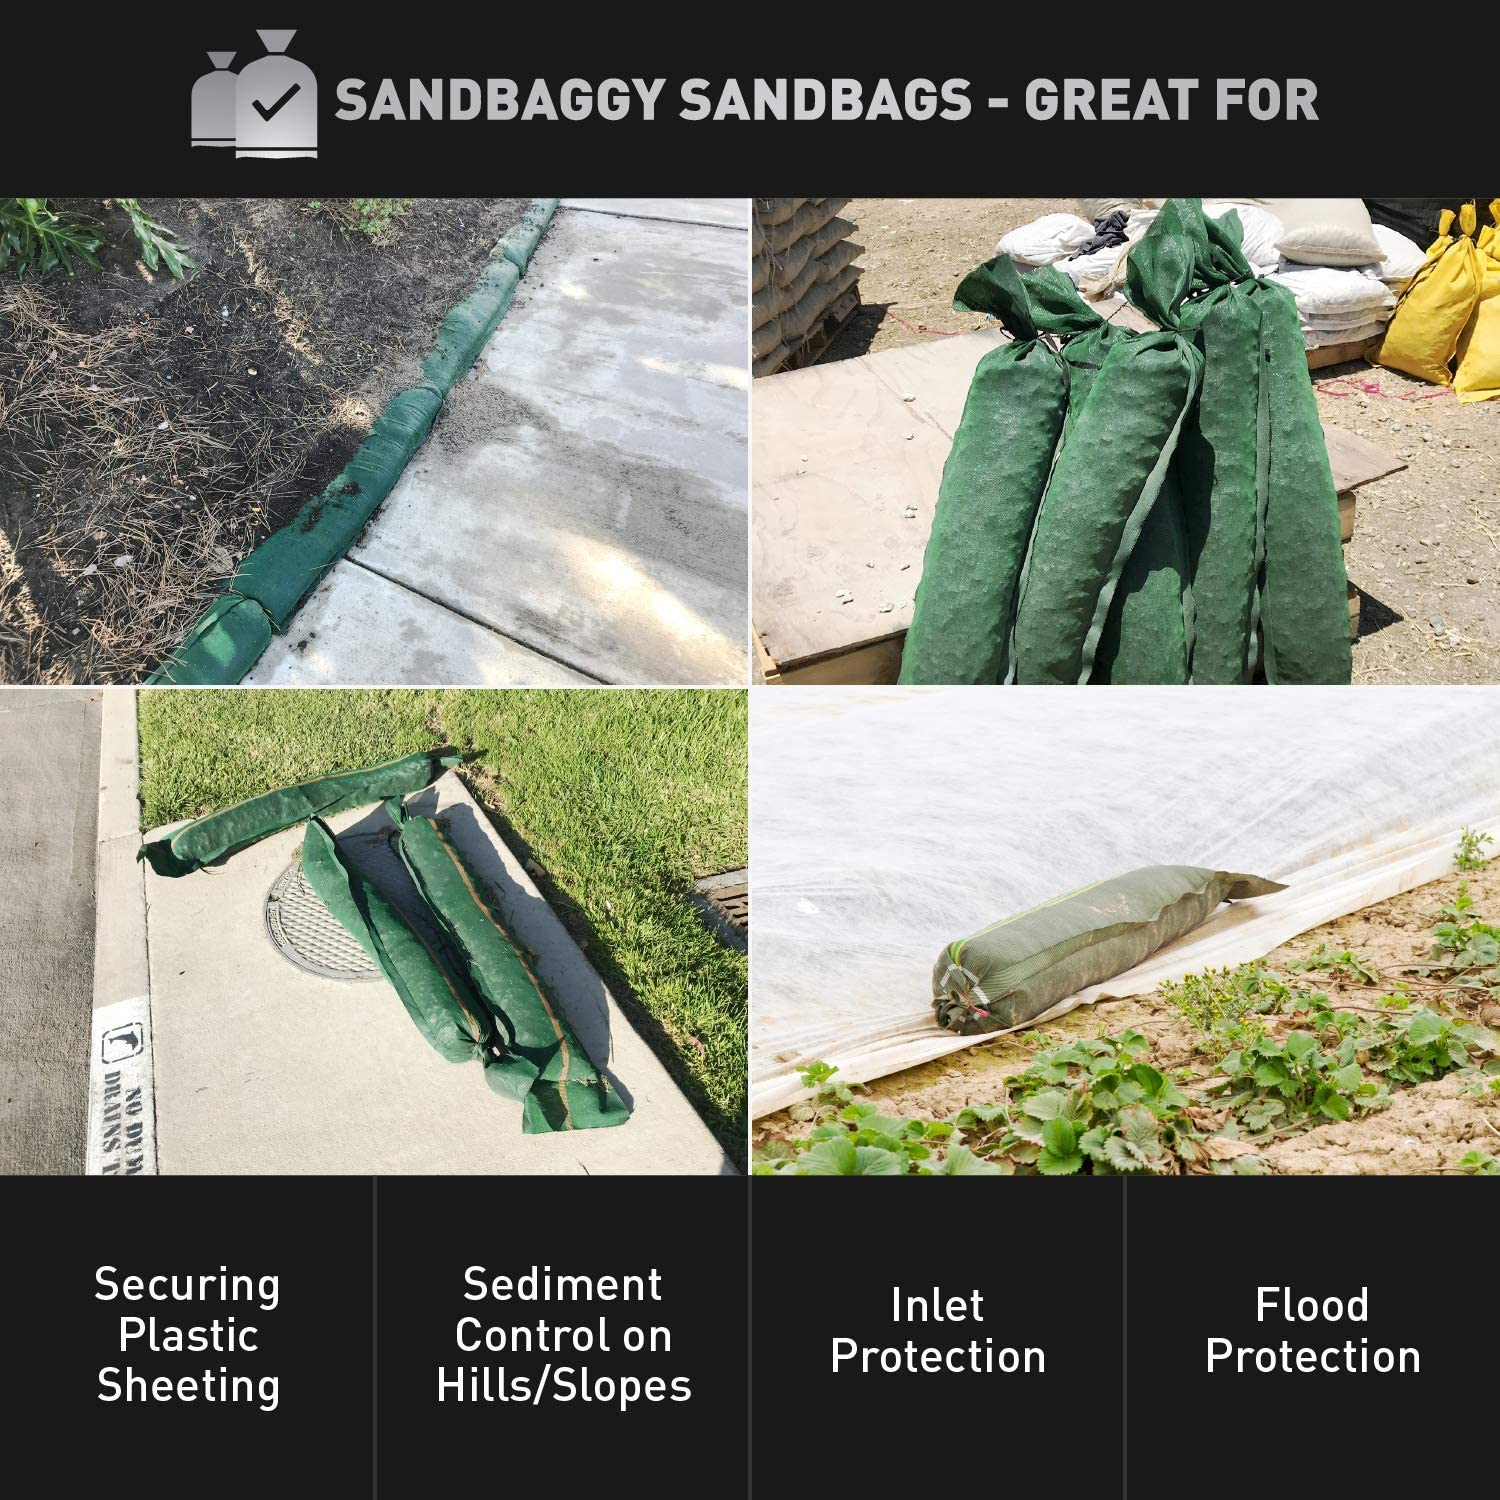 Pack of 50 Store Bags Sandbaggy Flood Water Barrier Tent Sandbags Monofilament 11 x 48 Long-Lasting Sandbags Sandbags for Flooding Water Curb Sand Bag Lasts 1-2 Yrs